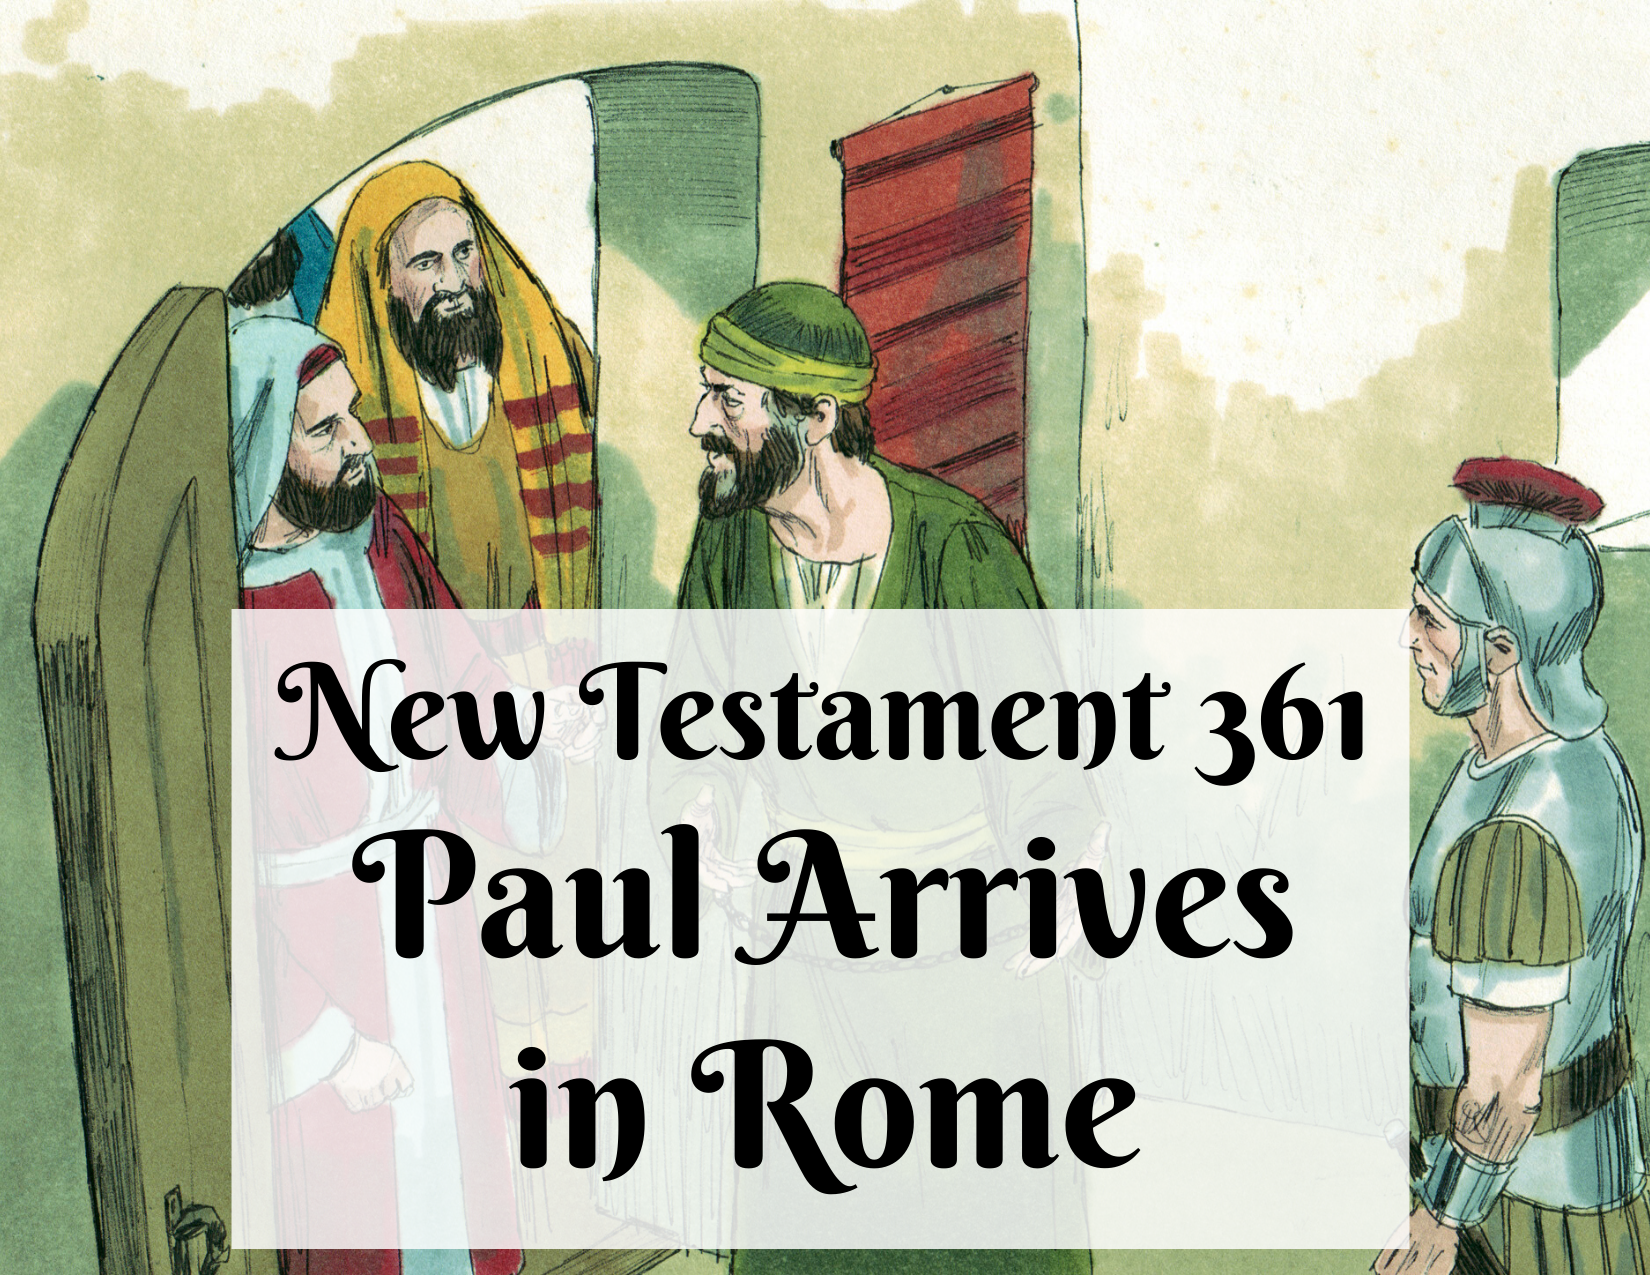 New Testament 361 - Paul Arrives in Rome